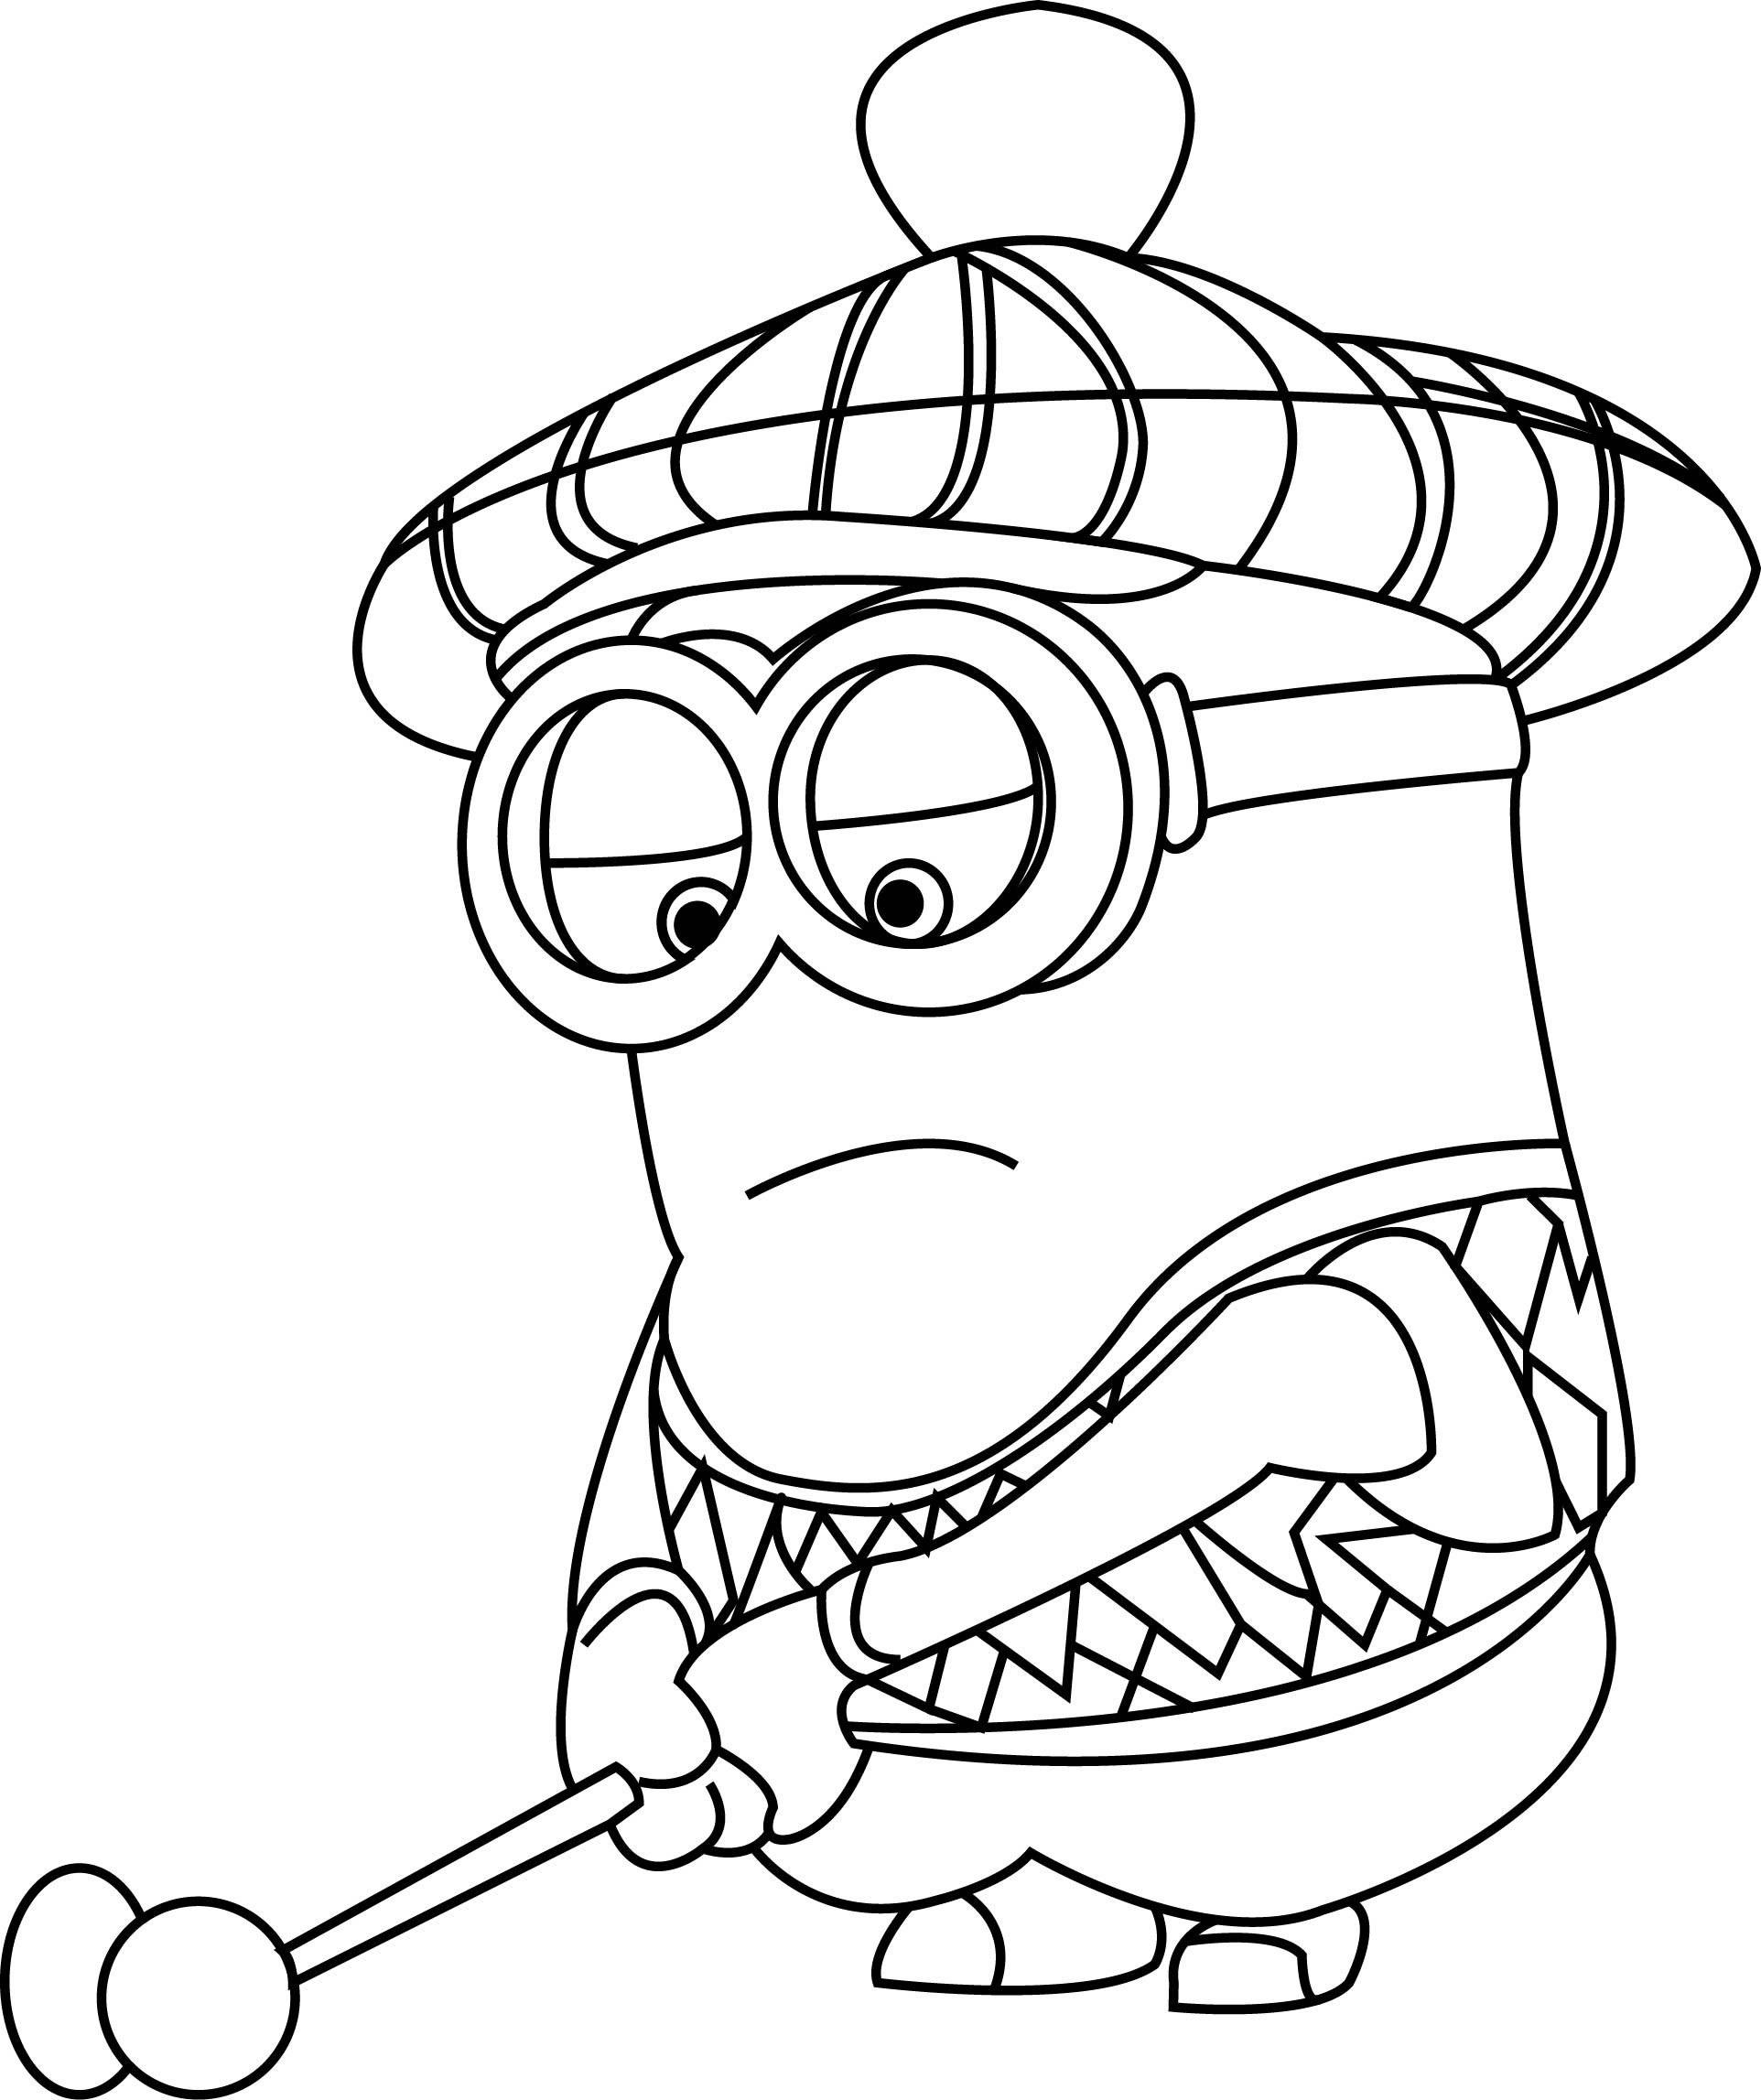 despicable me minions coloring pages minion of despicable me coloring pages cartoons coloring coloring pages minions despicable me